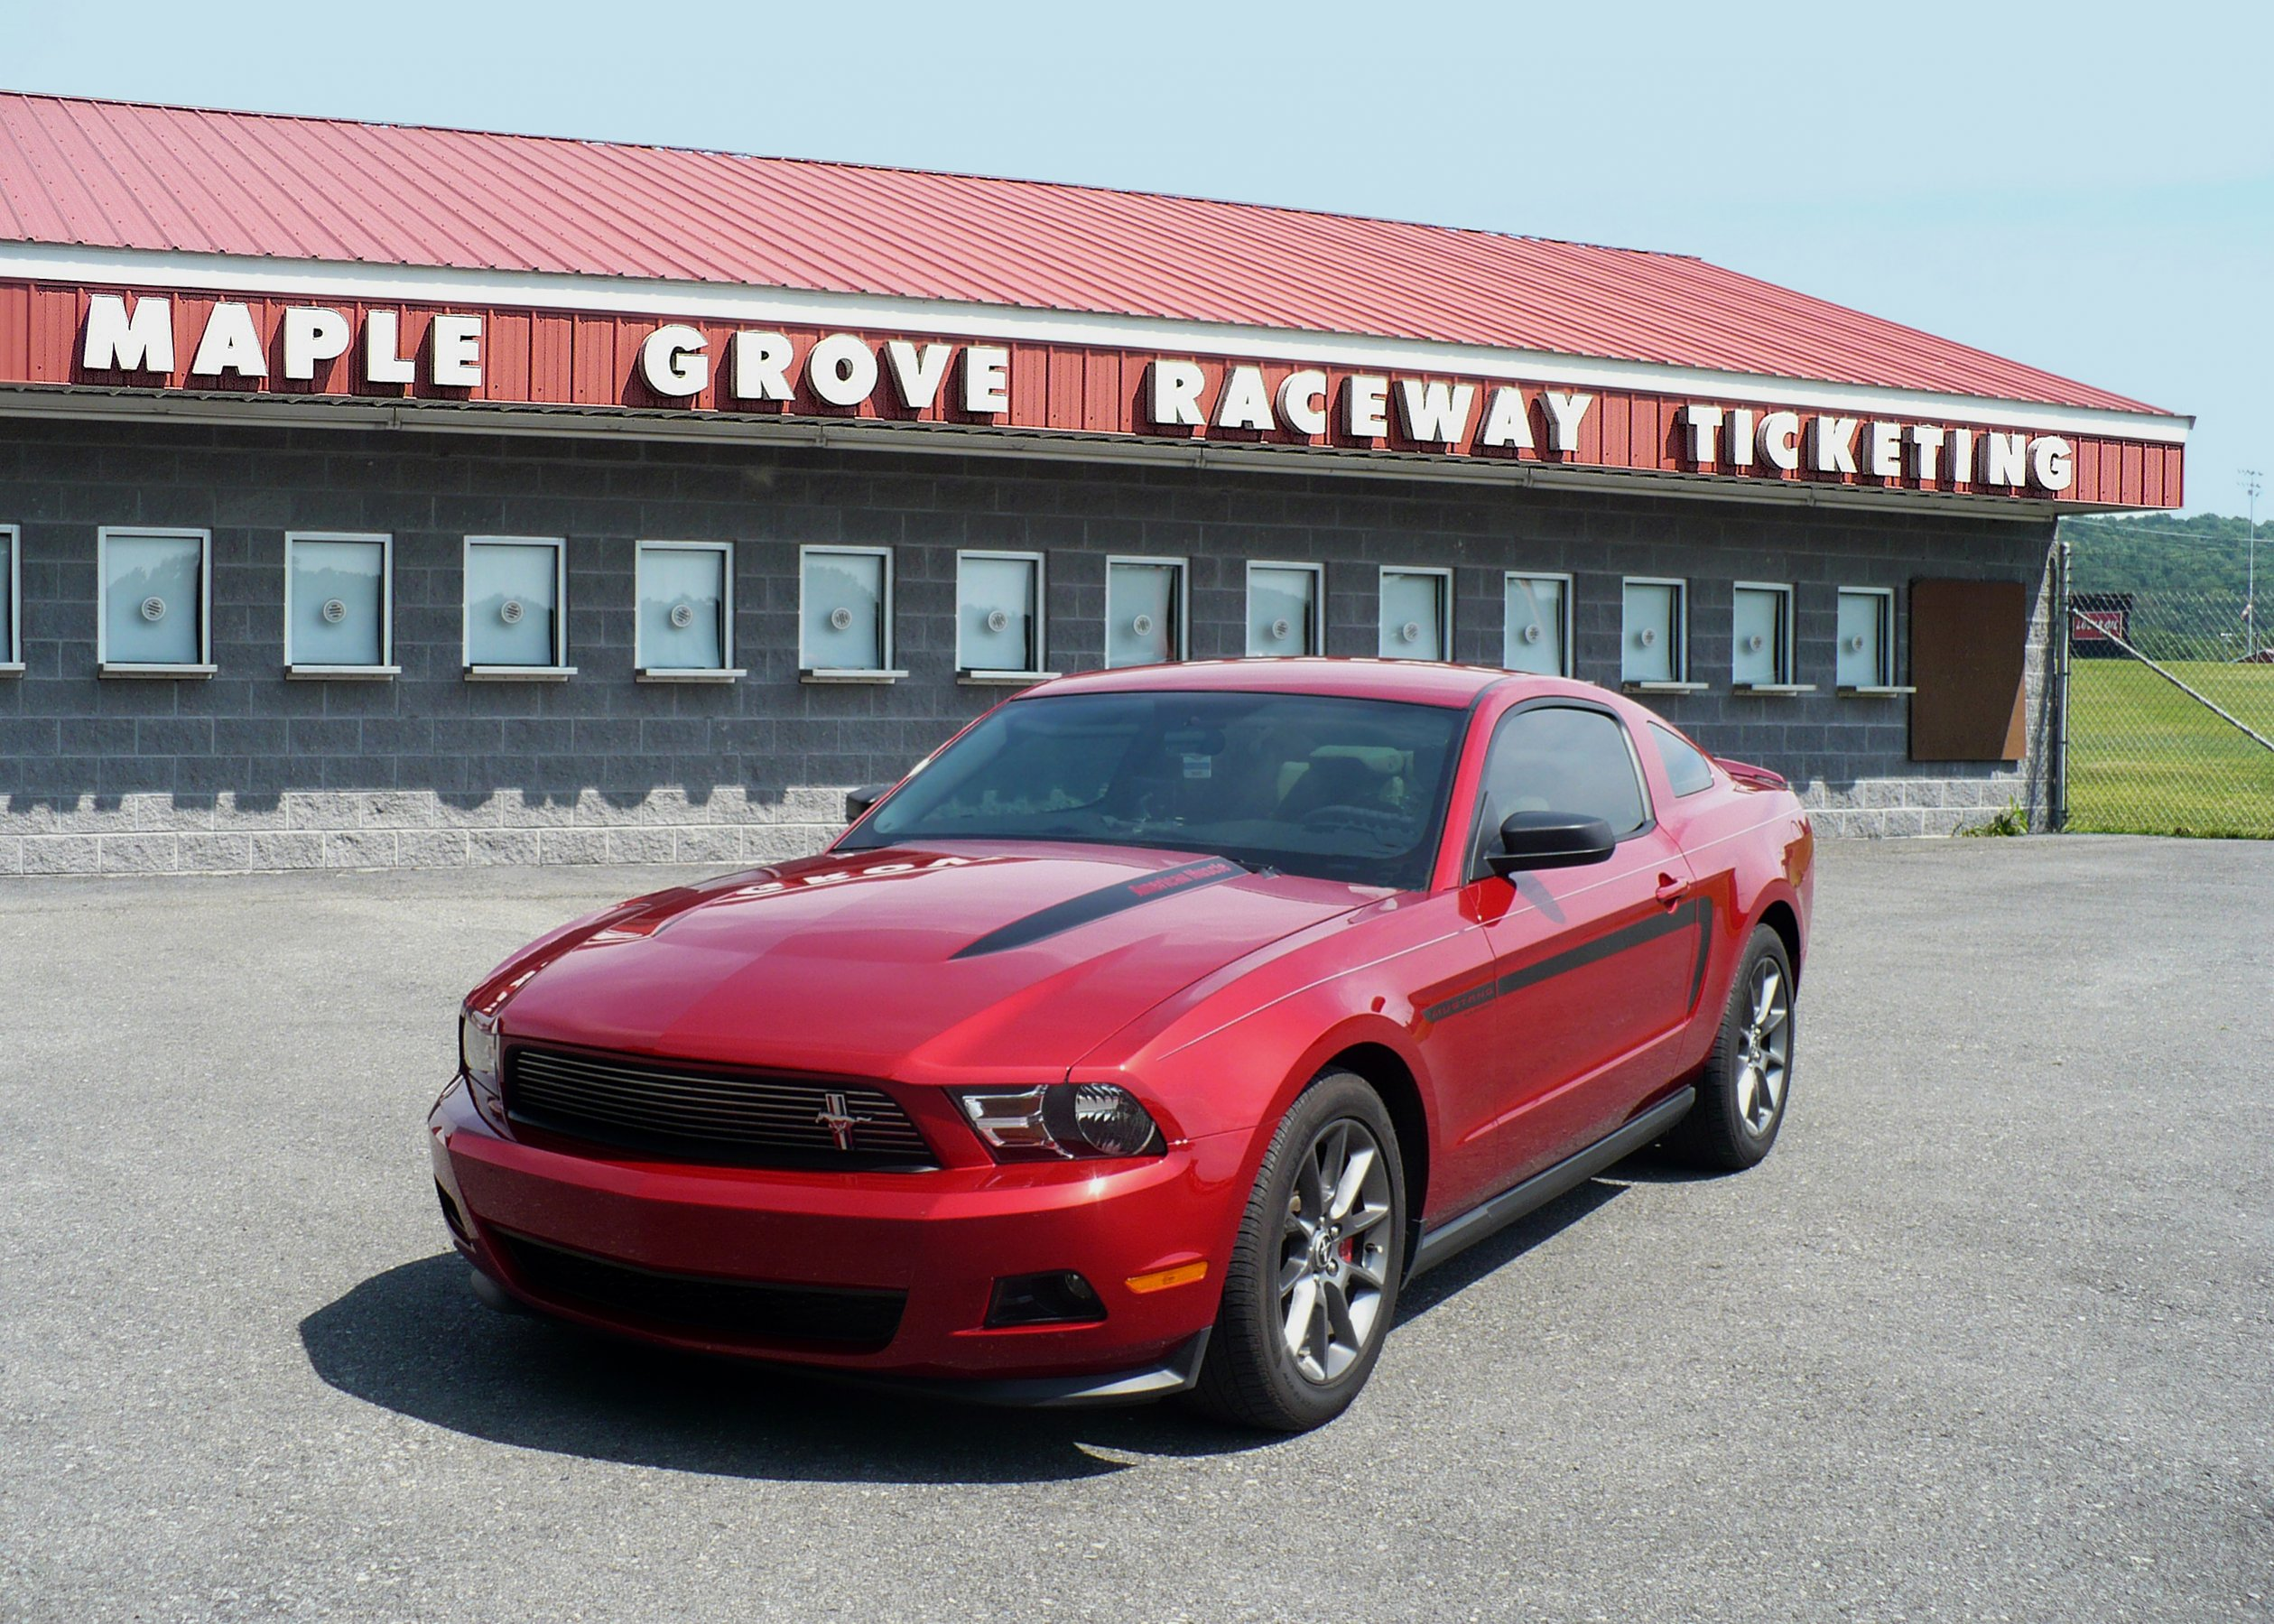 Click image for larger version  Name:Maple Grove Ticketing 5X7.jpg Views:106 Size:831.4 KB ID:188247